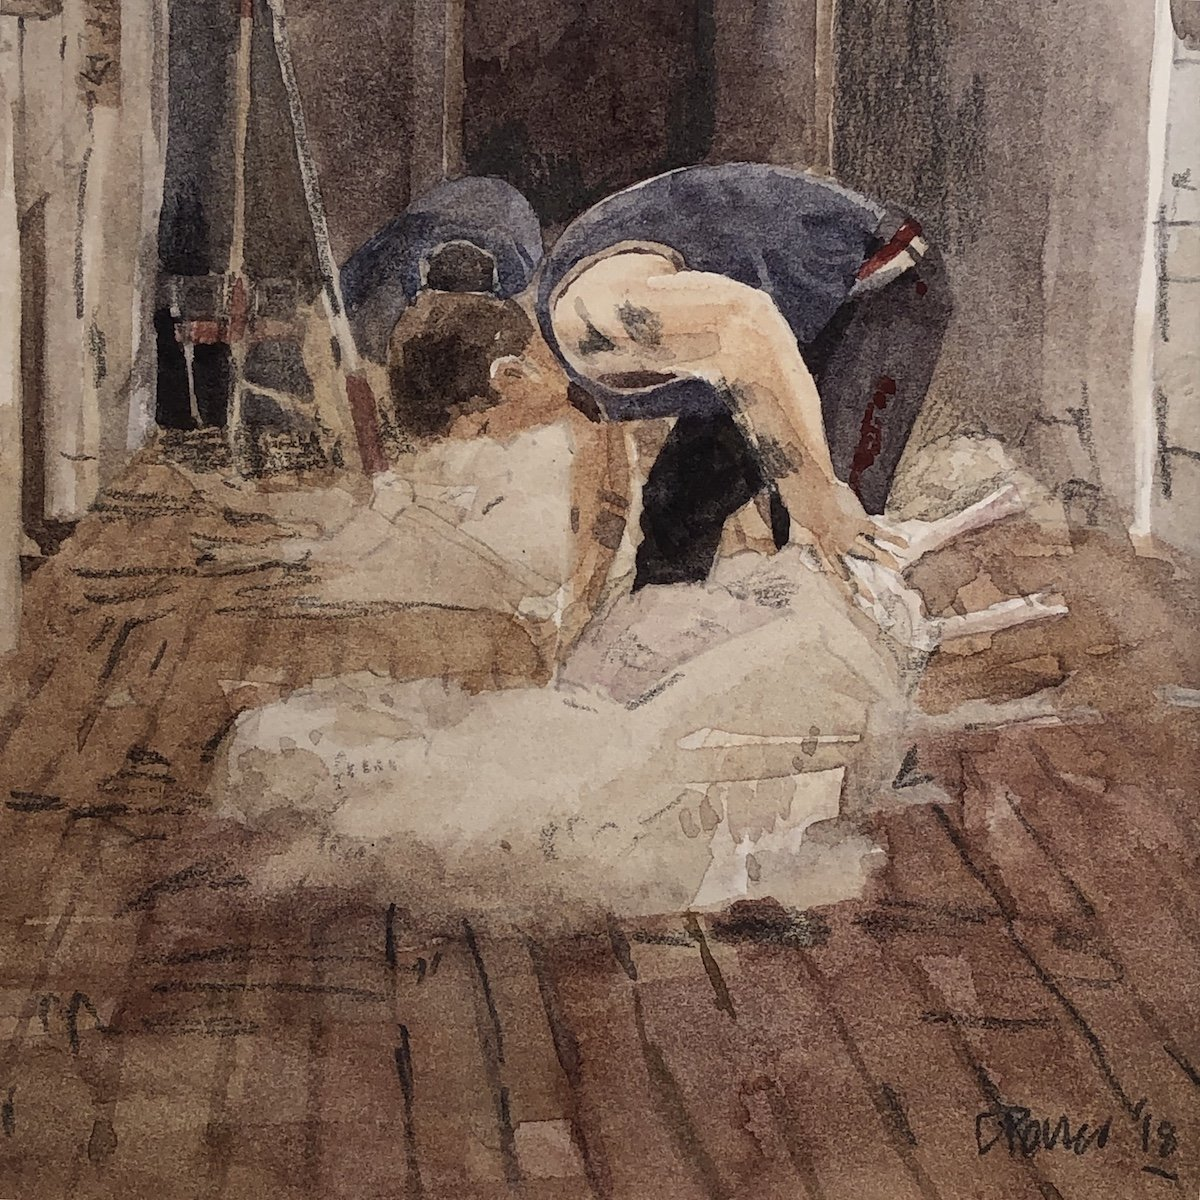 Watercolour painting by Christine Porter showing a single shearer bent over a sheep, shearing.